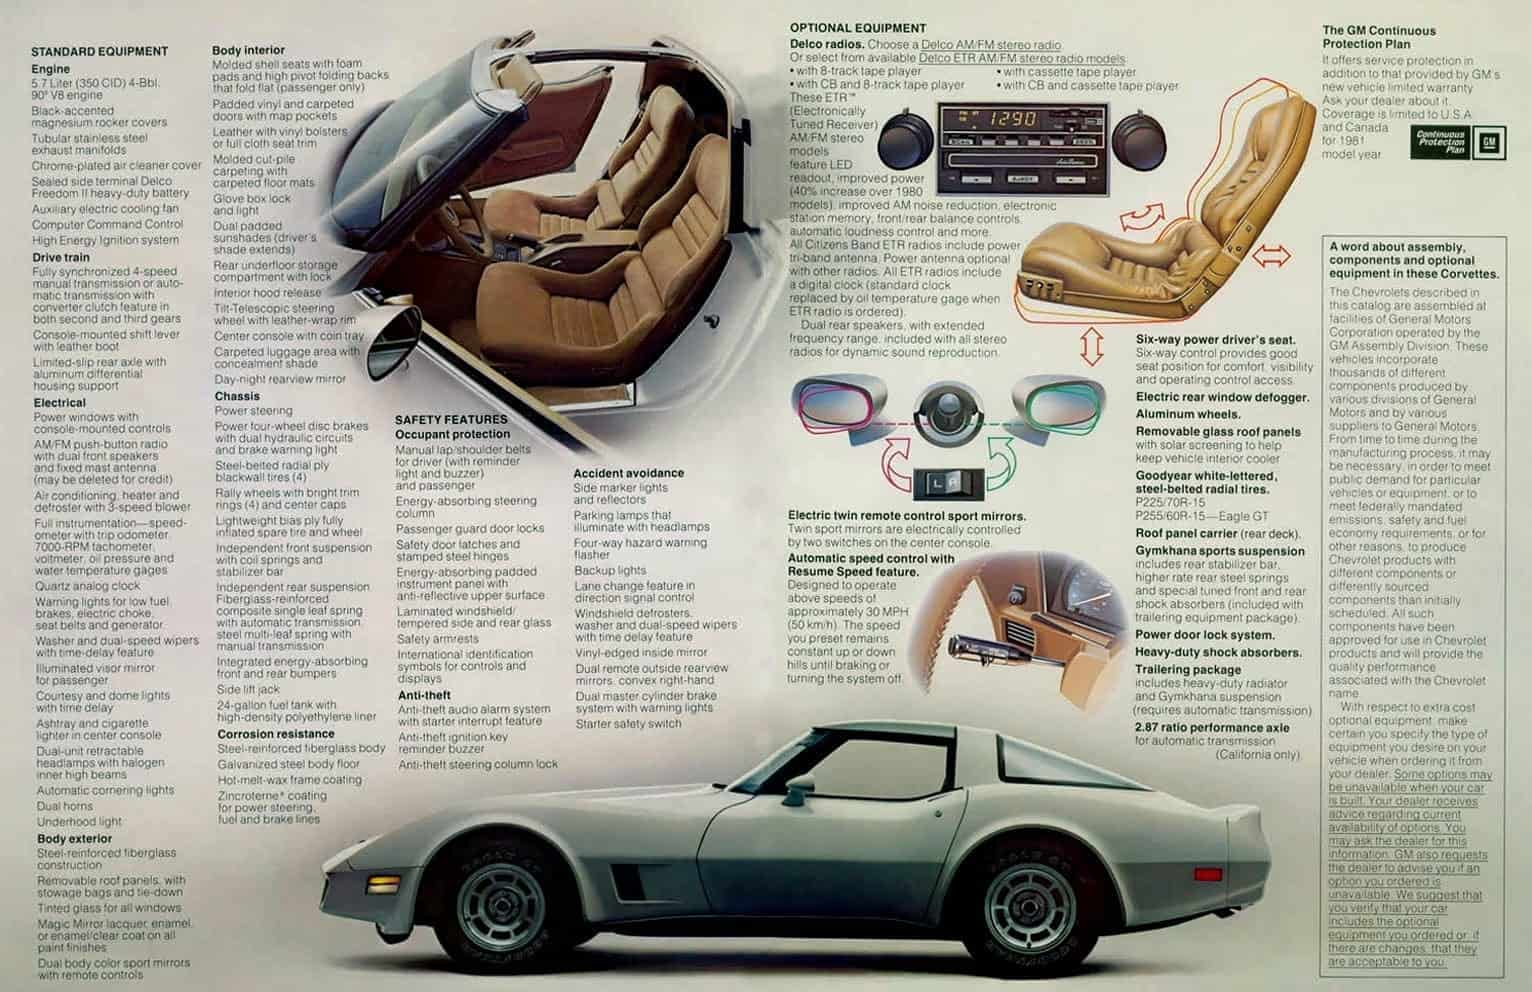 1981 Chevrolet Corvette Brochure